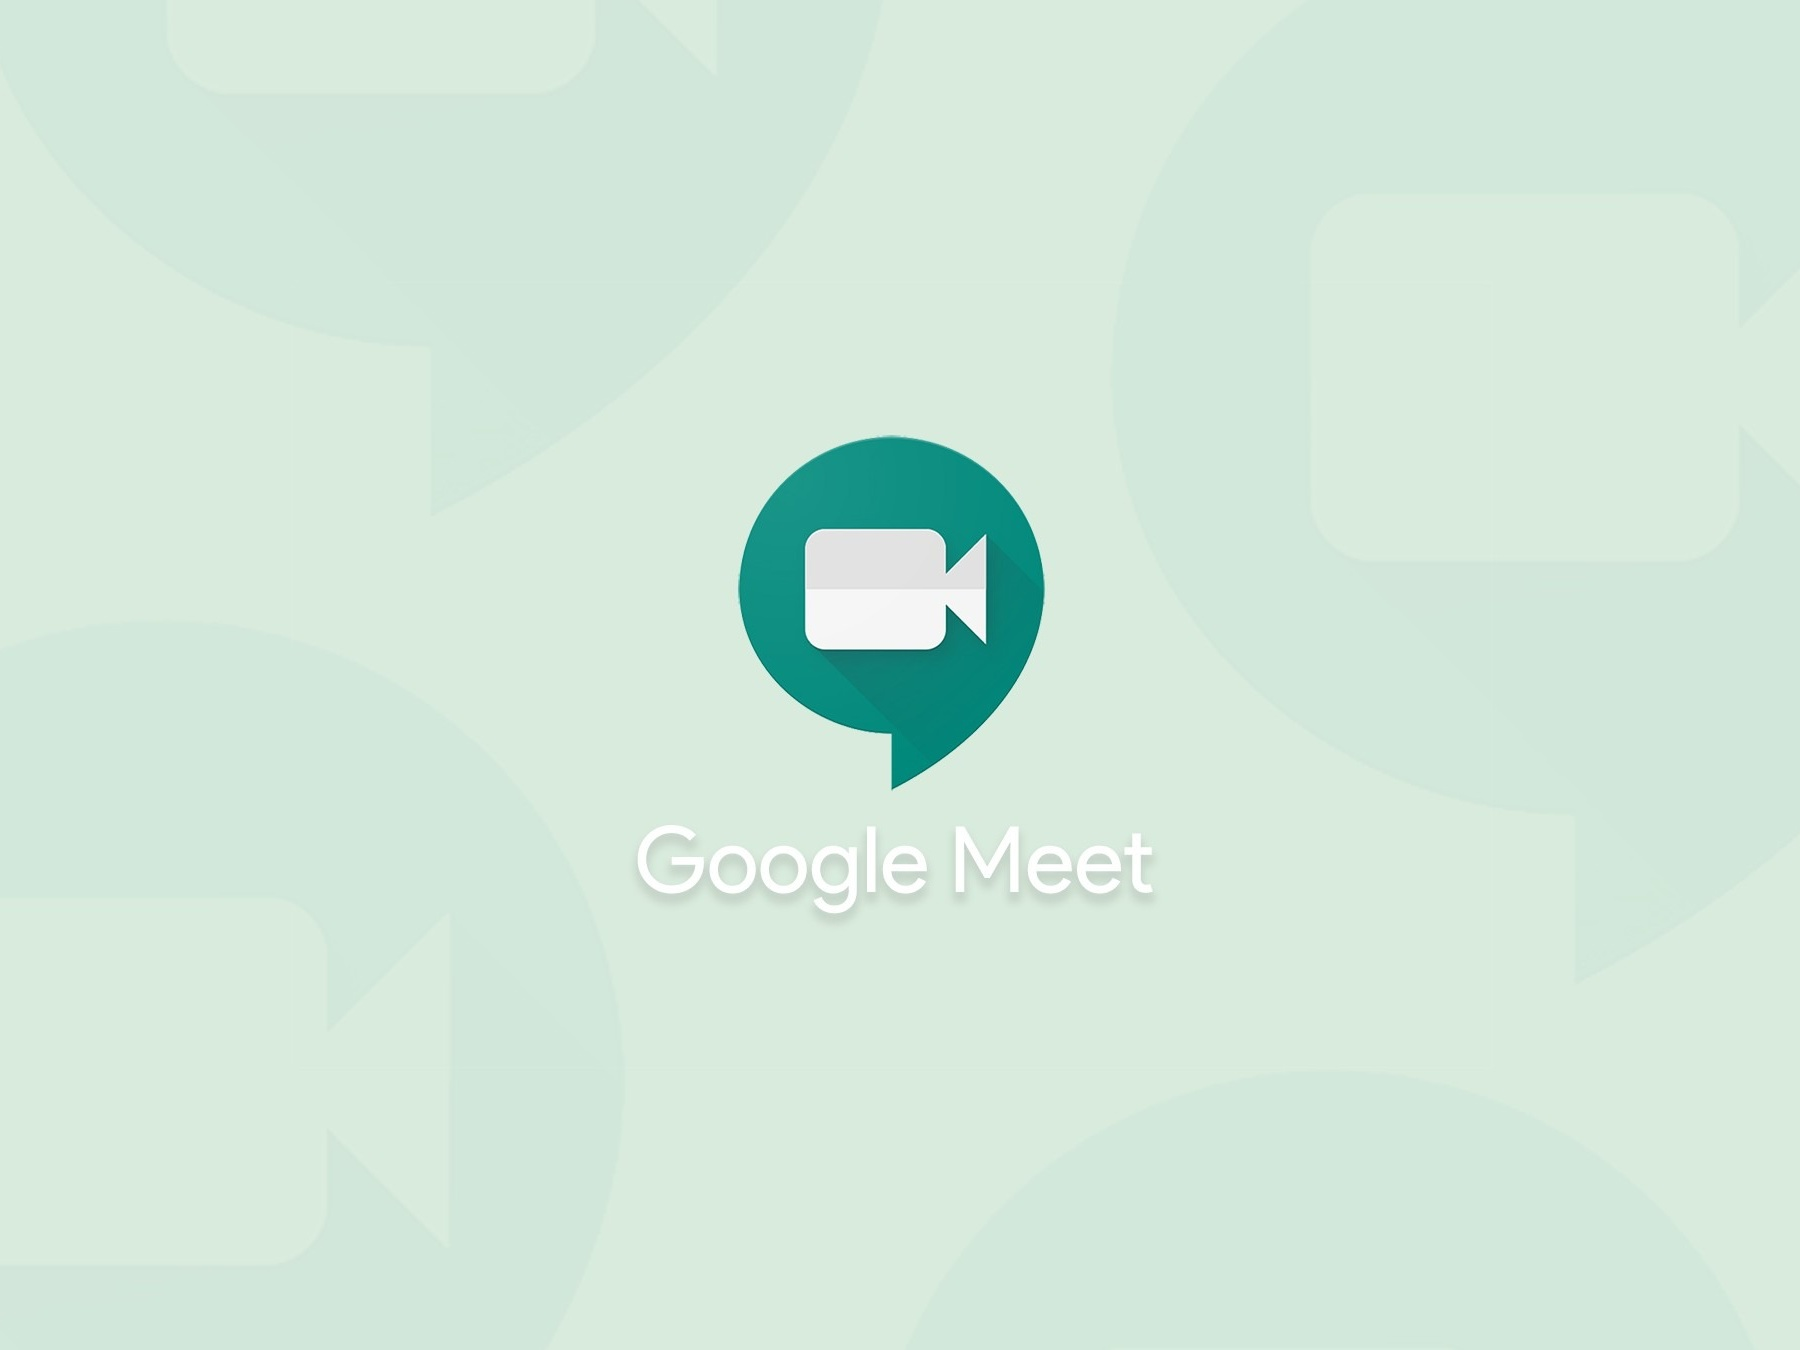 Google Meet torna a limitare le chiamate gratuite, ma ecco le alternative